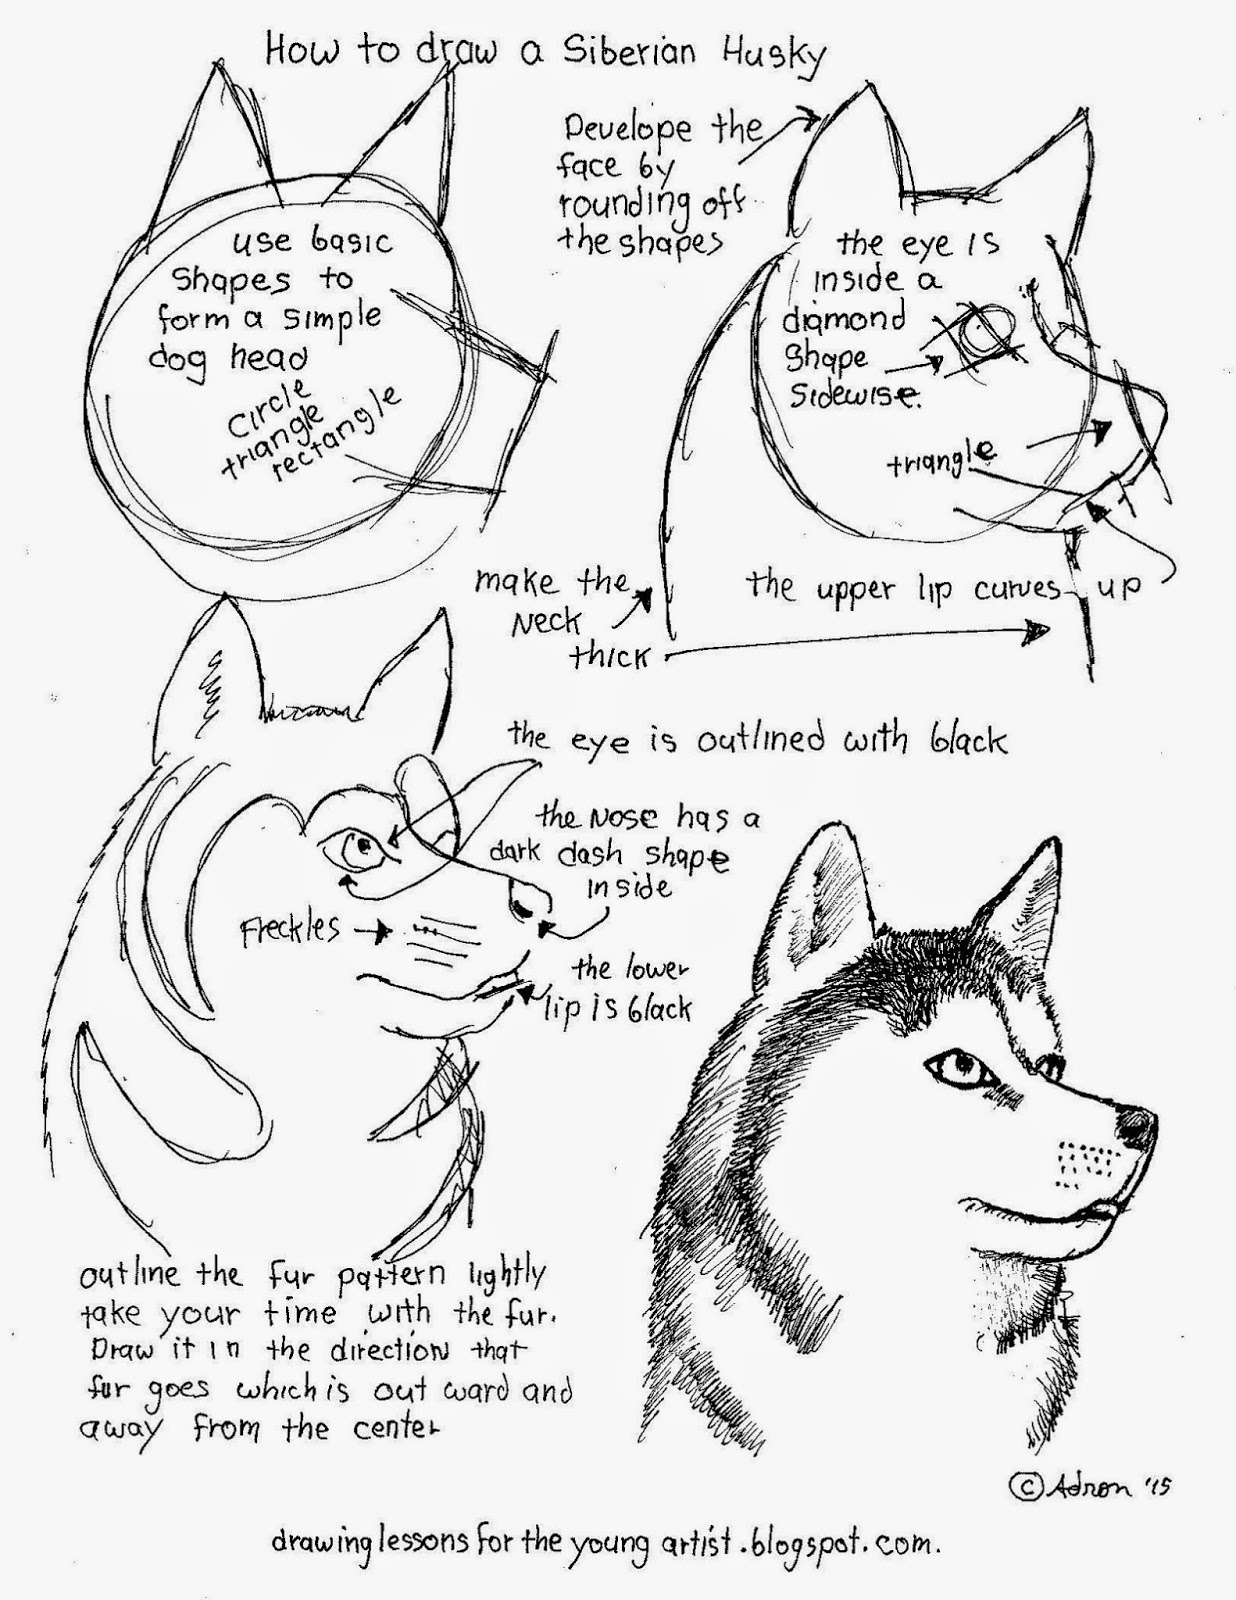 How To Draw Worksheets For The Young Artist How To Draw A Siberian Husky Free Printable Worksheet